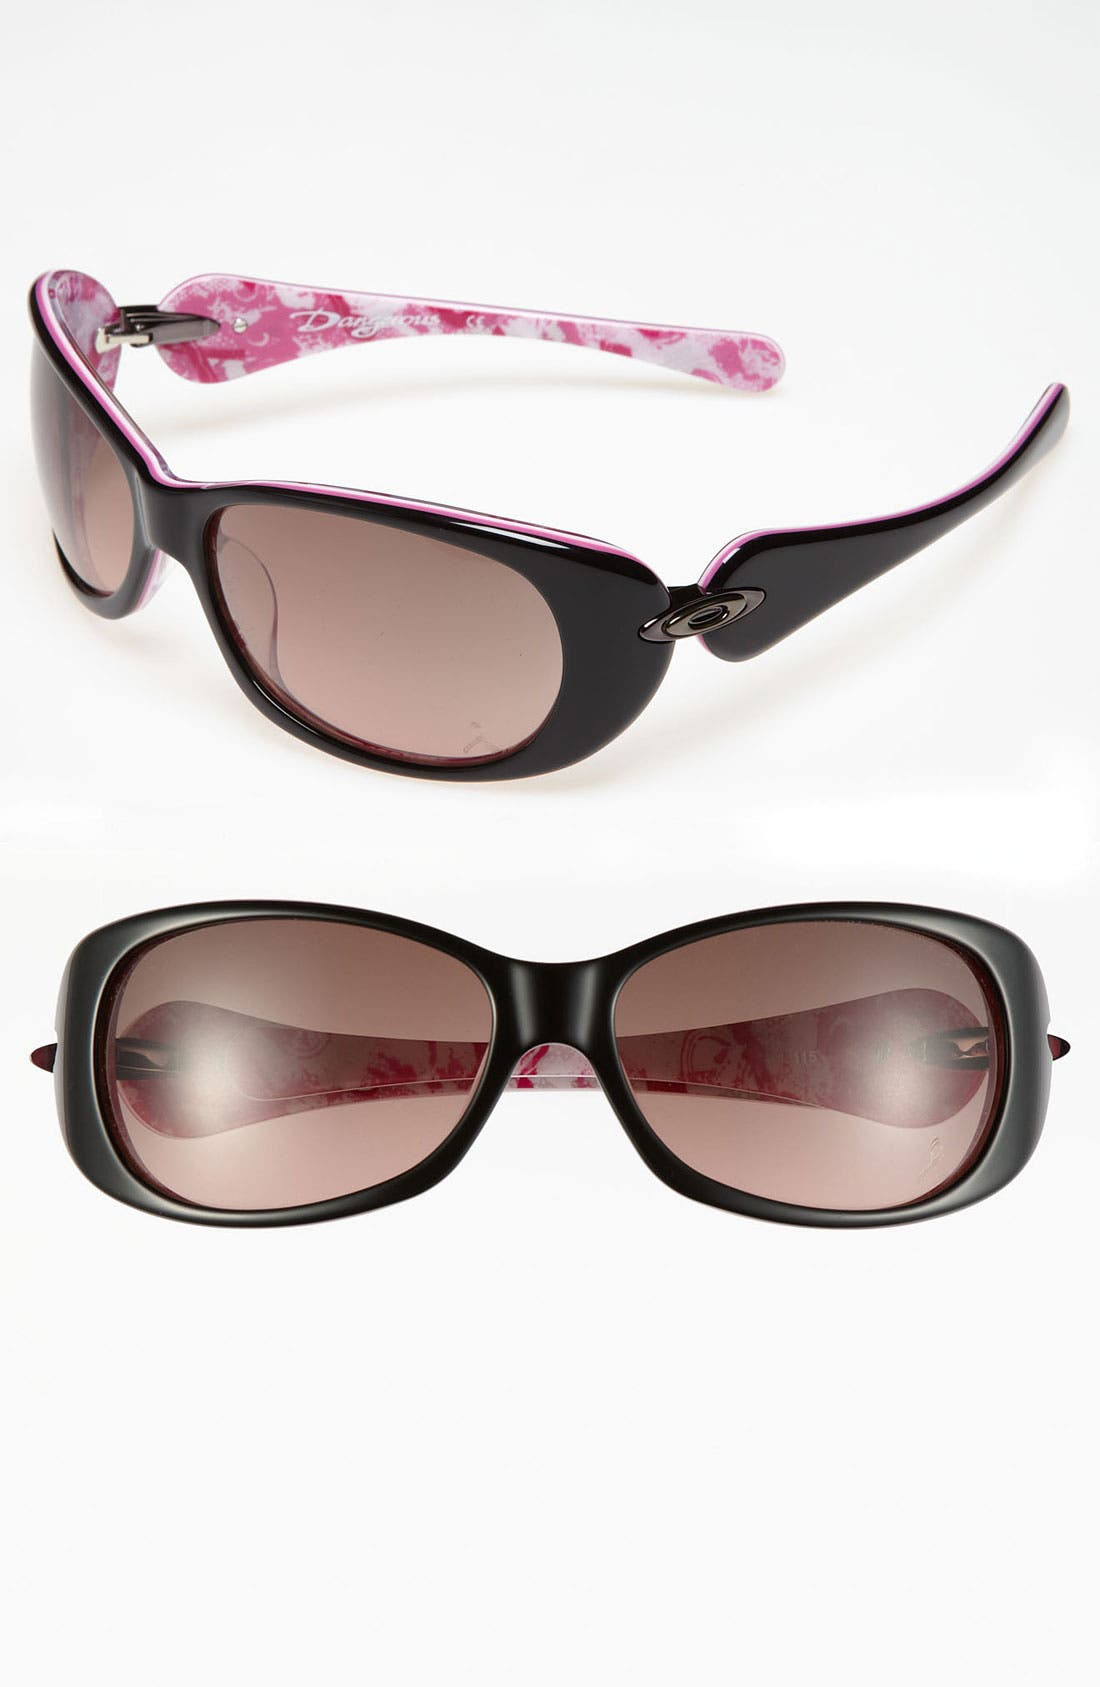 Main Image - Oakley 'Dangerous™' - Breast Cancer Awareness Edition' 61mm Sunglasses